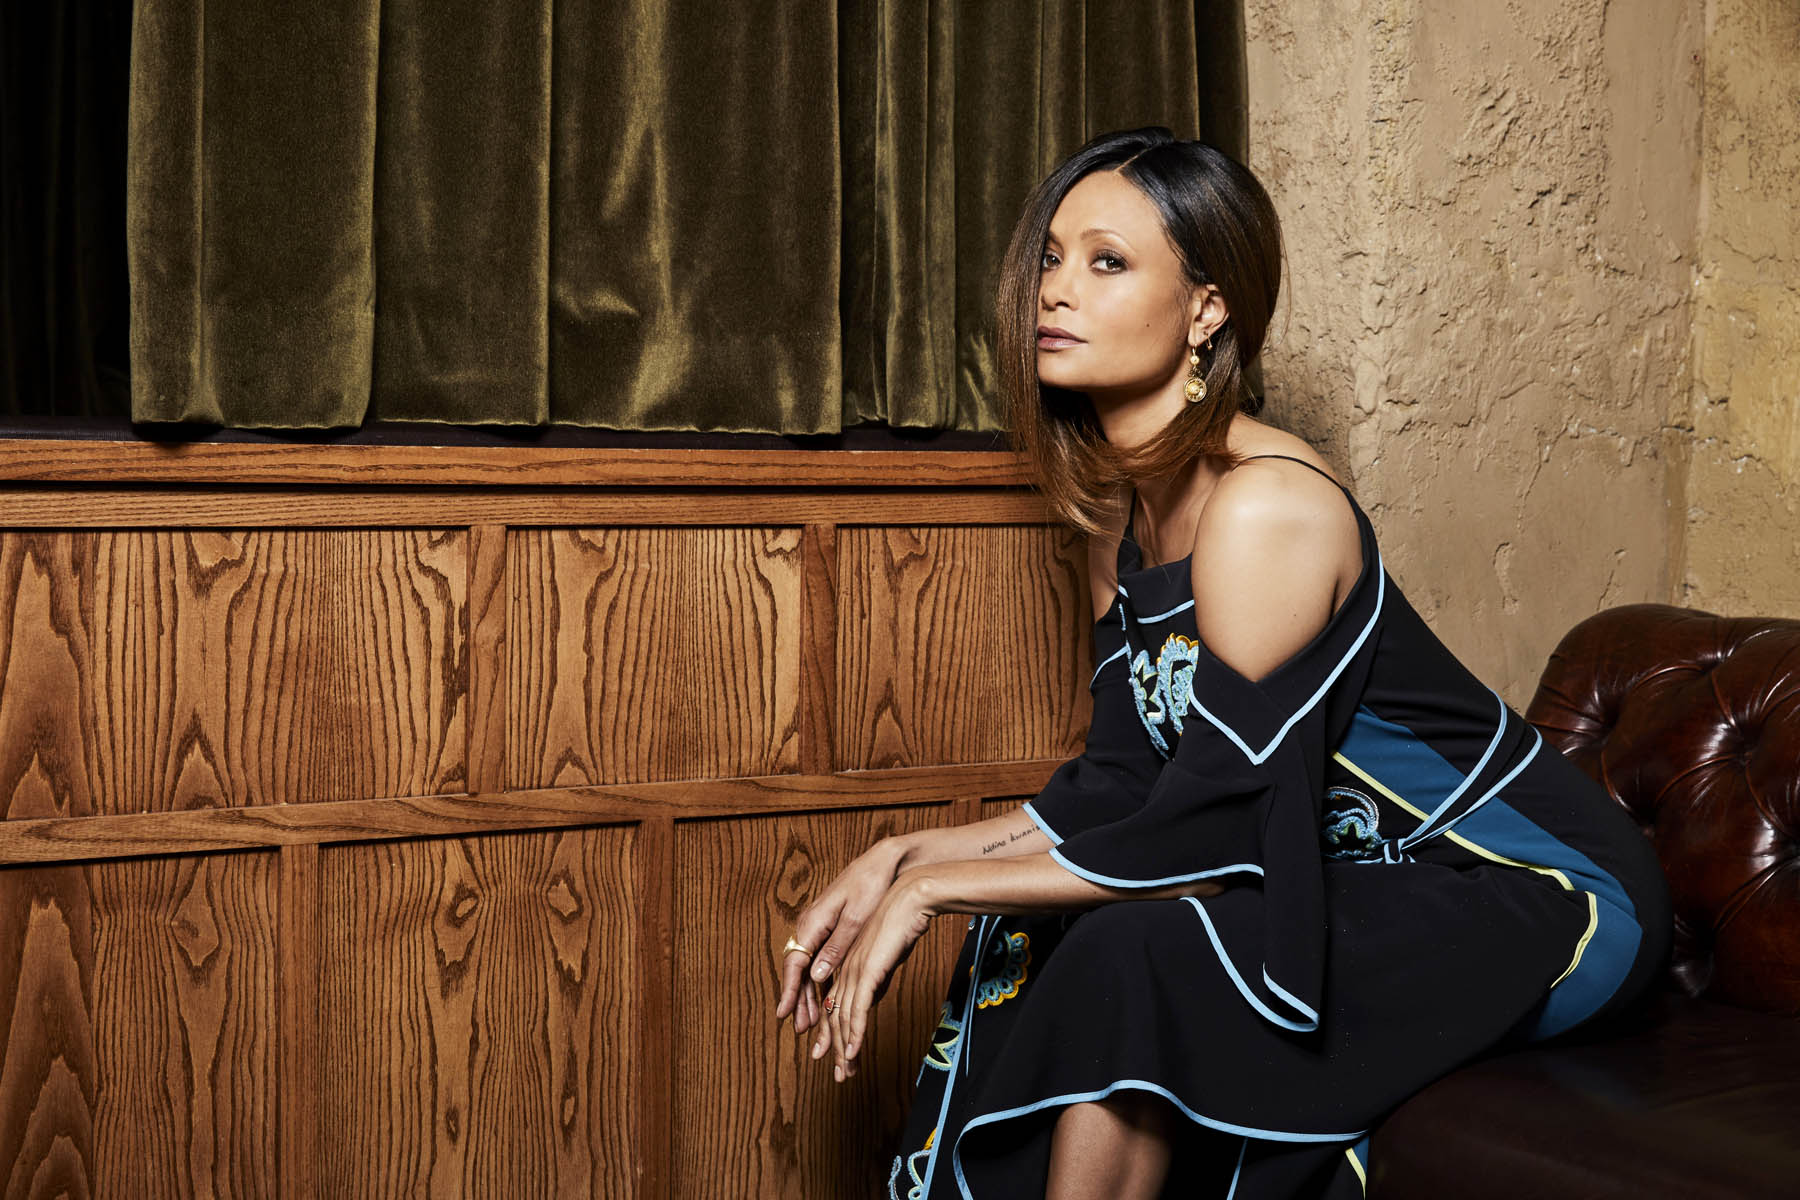 Thandie Newton for The WrapPhoto by Matt Sayles@msayleswww.mattsaylesphoto.com